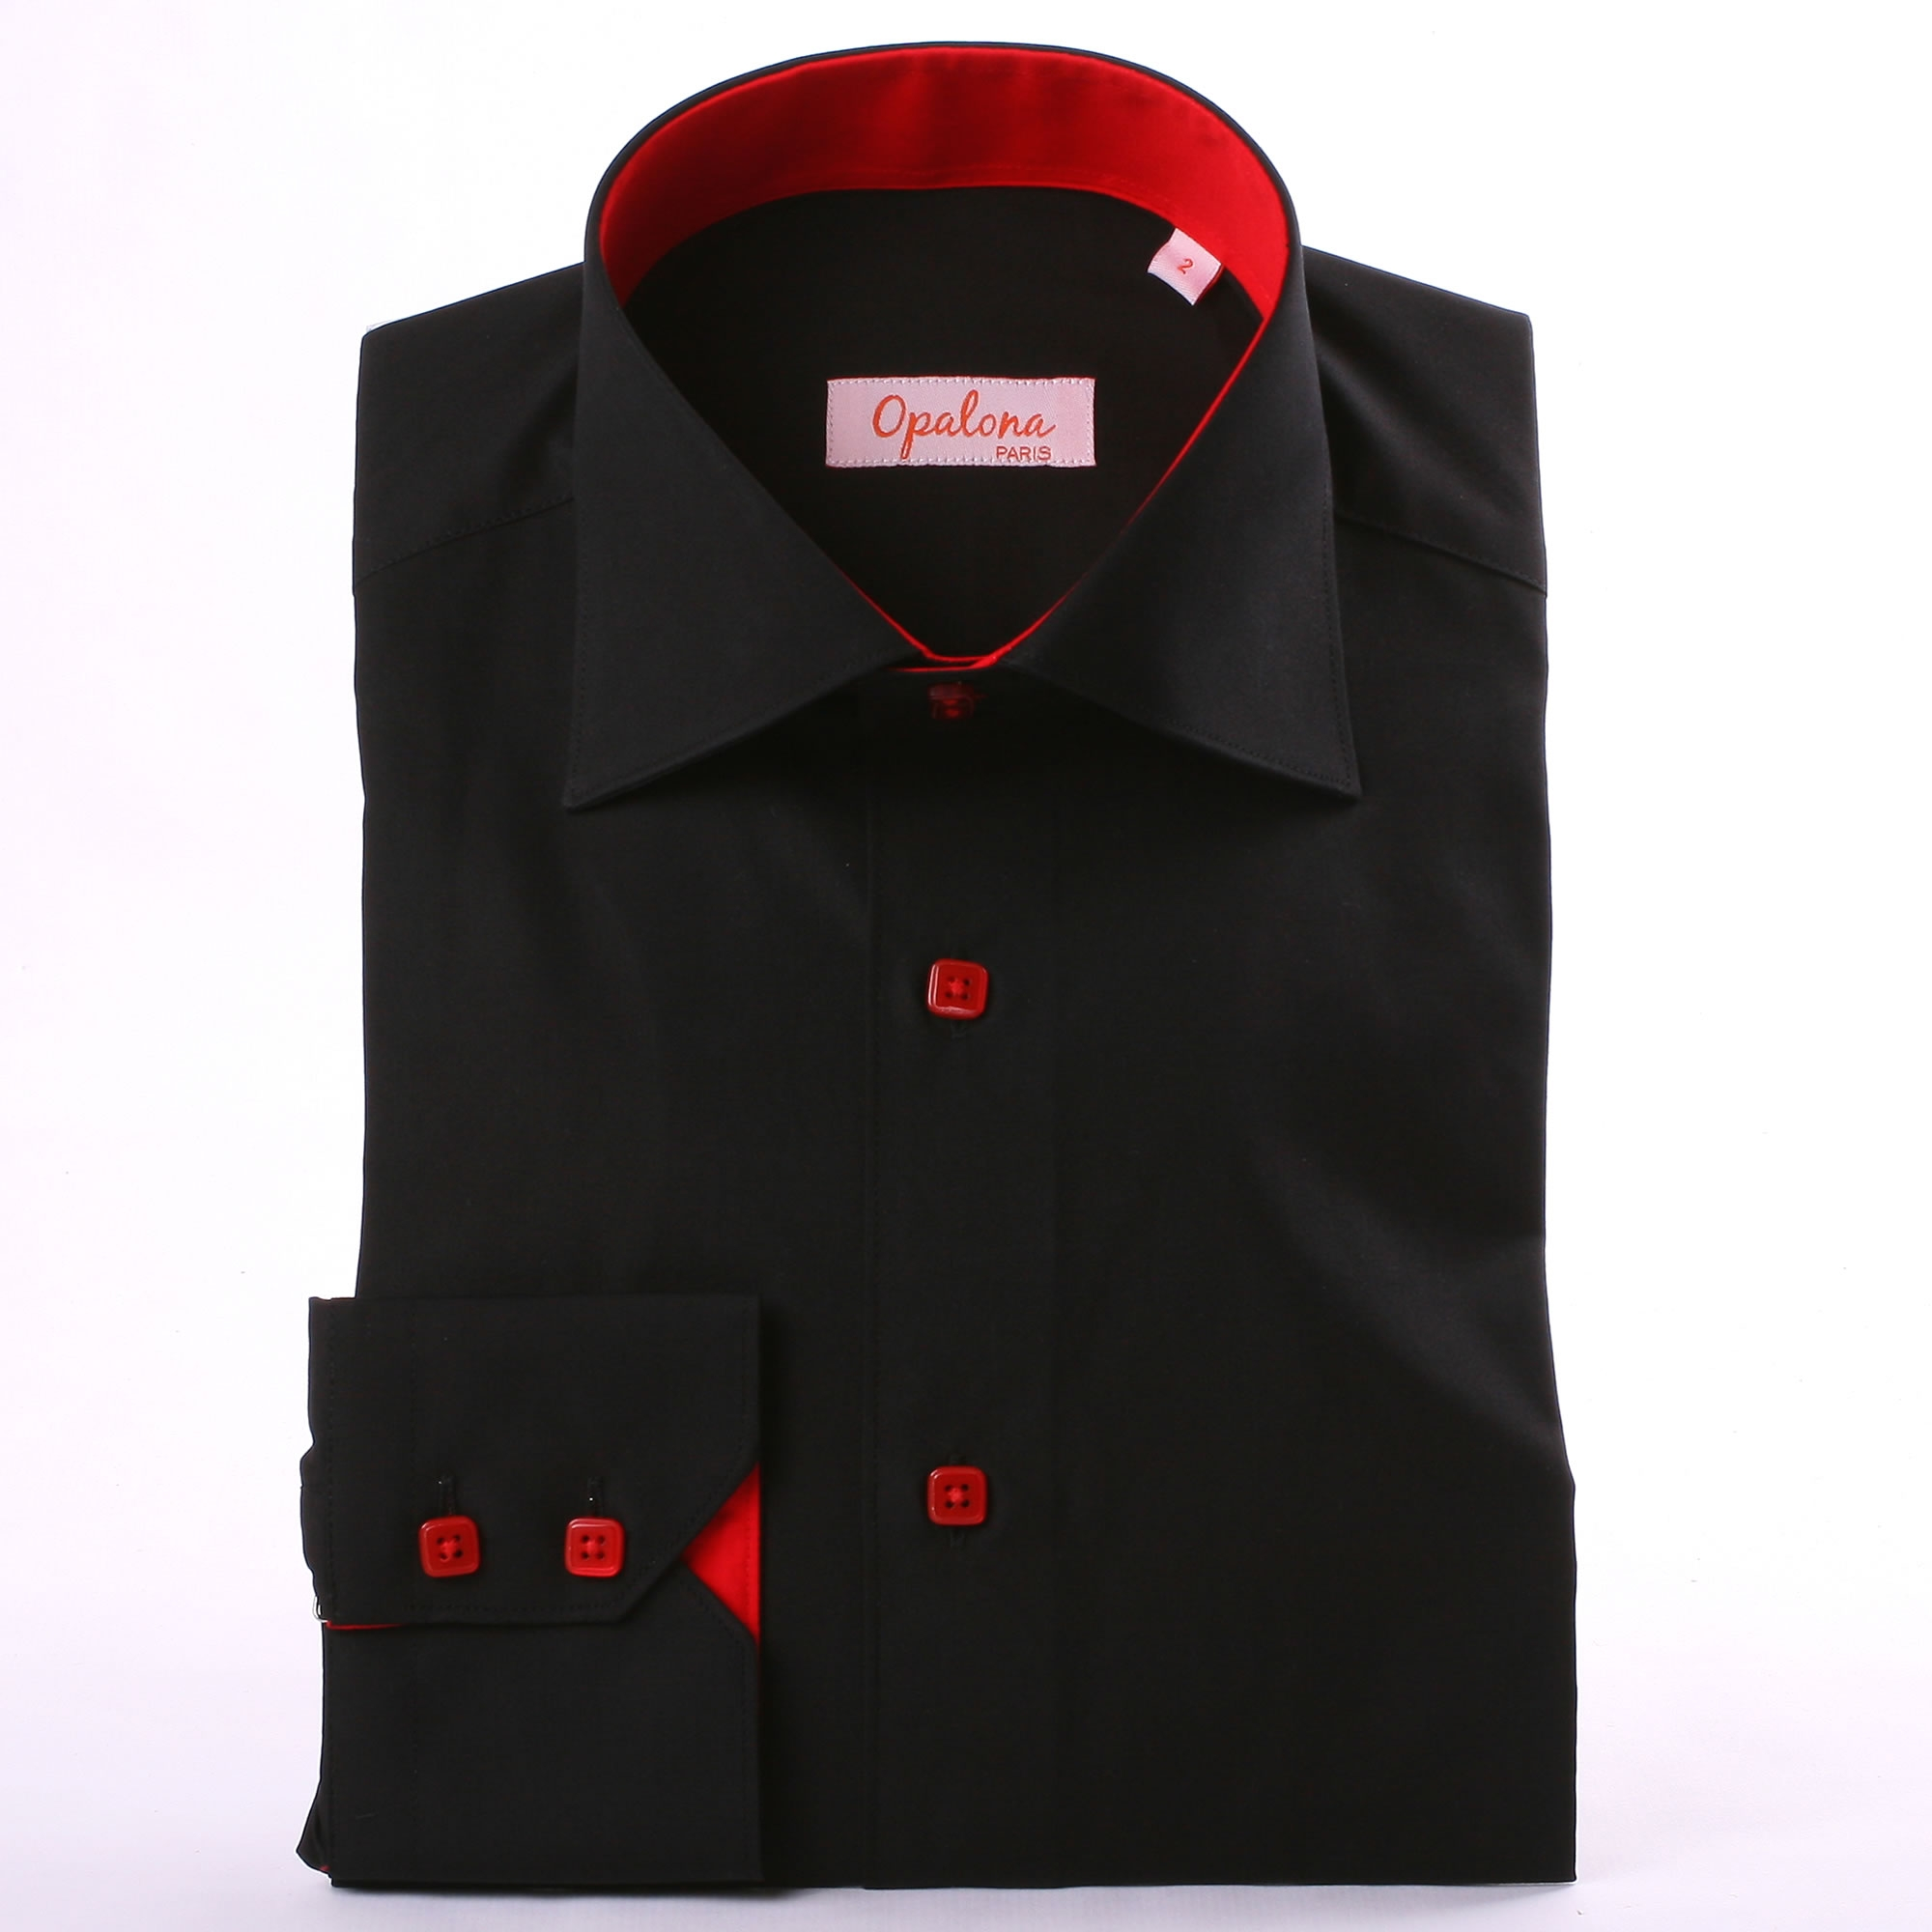 Black shirt with red collar and cuff and red buttons